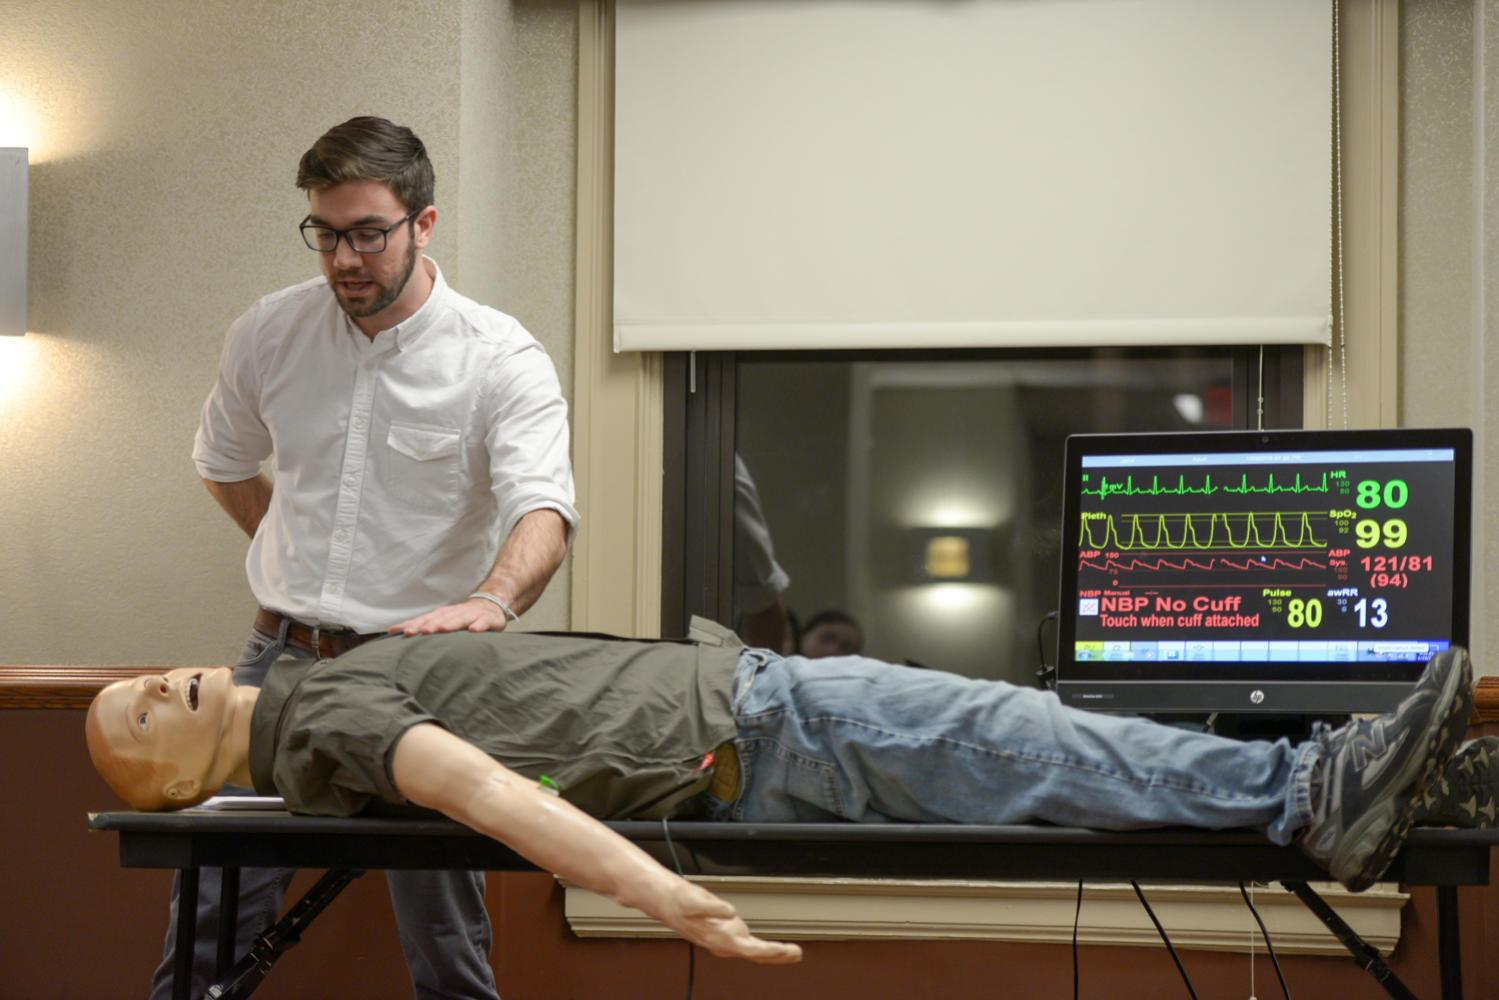 Second-year medical student Paolo Vignali demonstrates routes of administration for Narcan at Pitt Trauma and Emergency League's Narcan Training Tuesday night. (Photo by Sarah Cutshall | Staff Photographer)